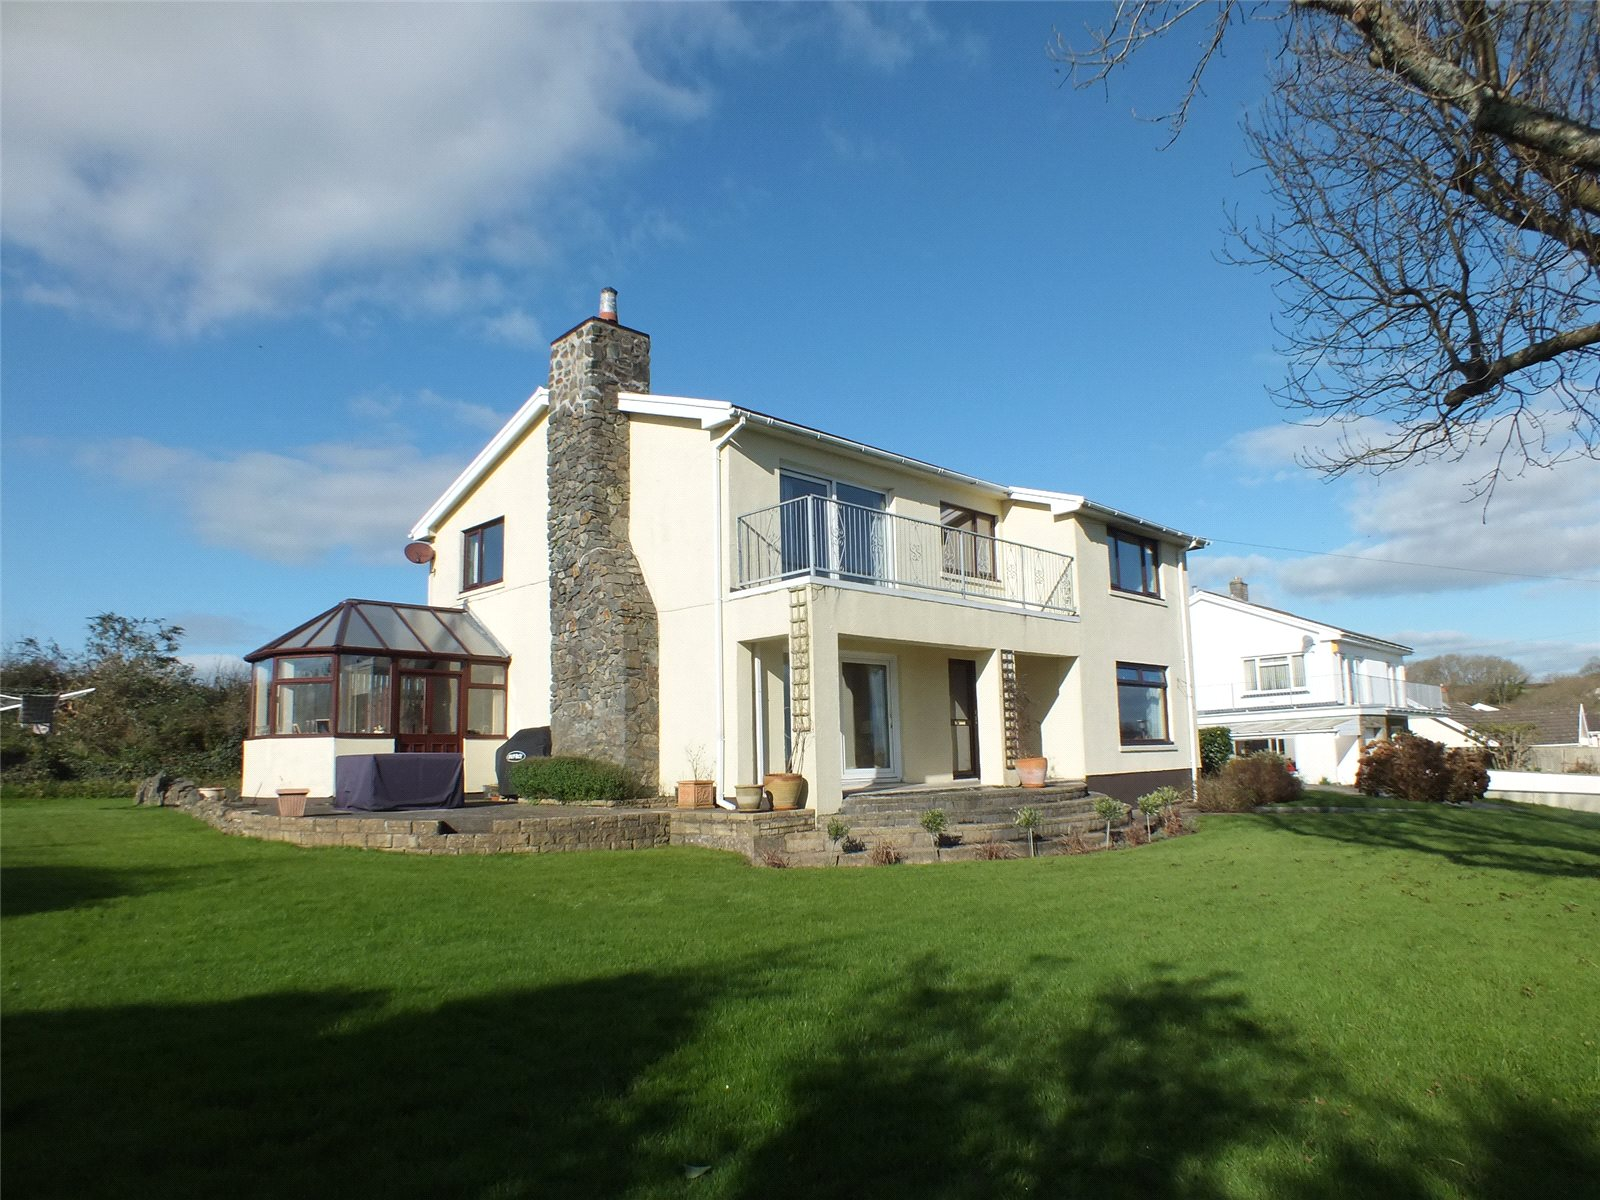 4 Bedrooms Detached House for sale in Lighthouse Drive, Llanstadwell, Pembrokeshire